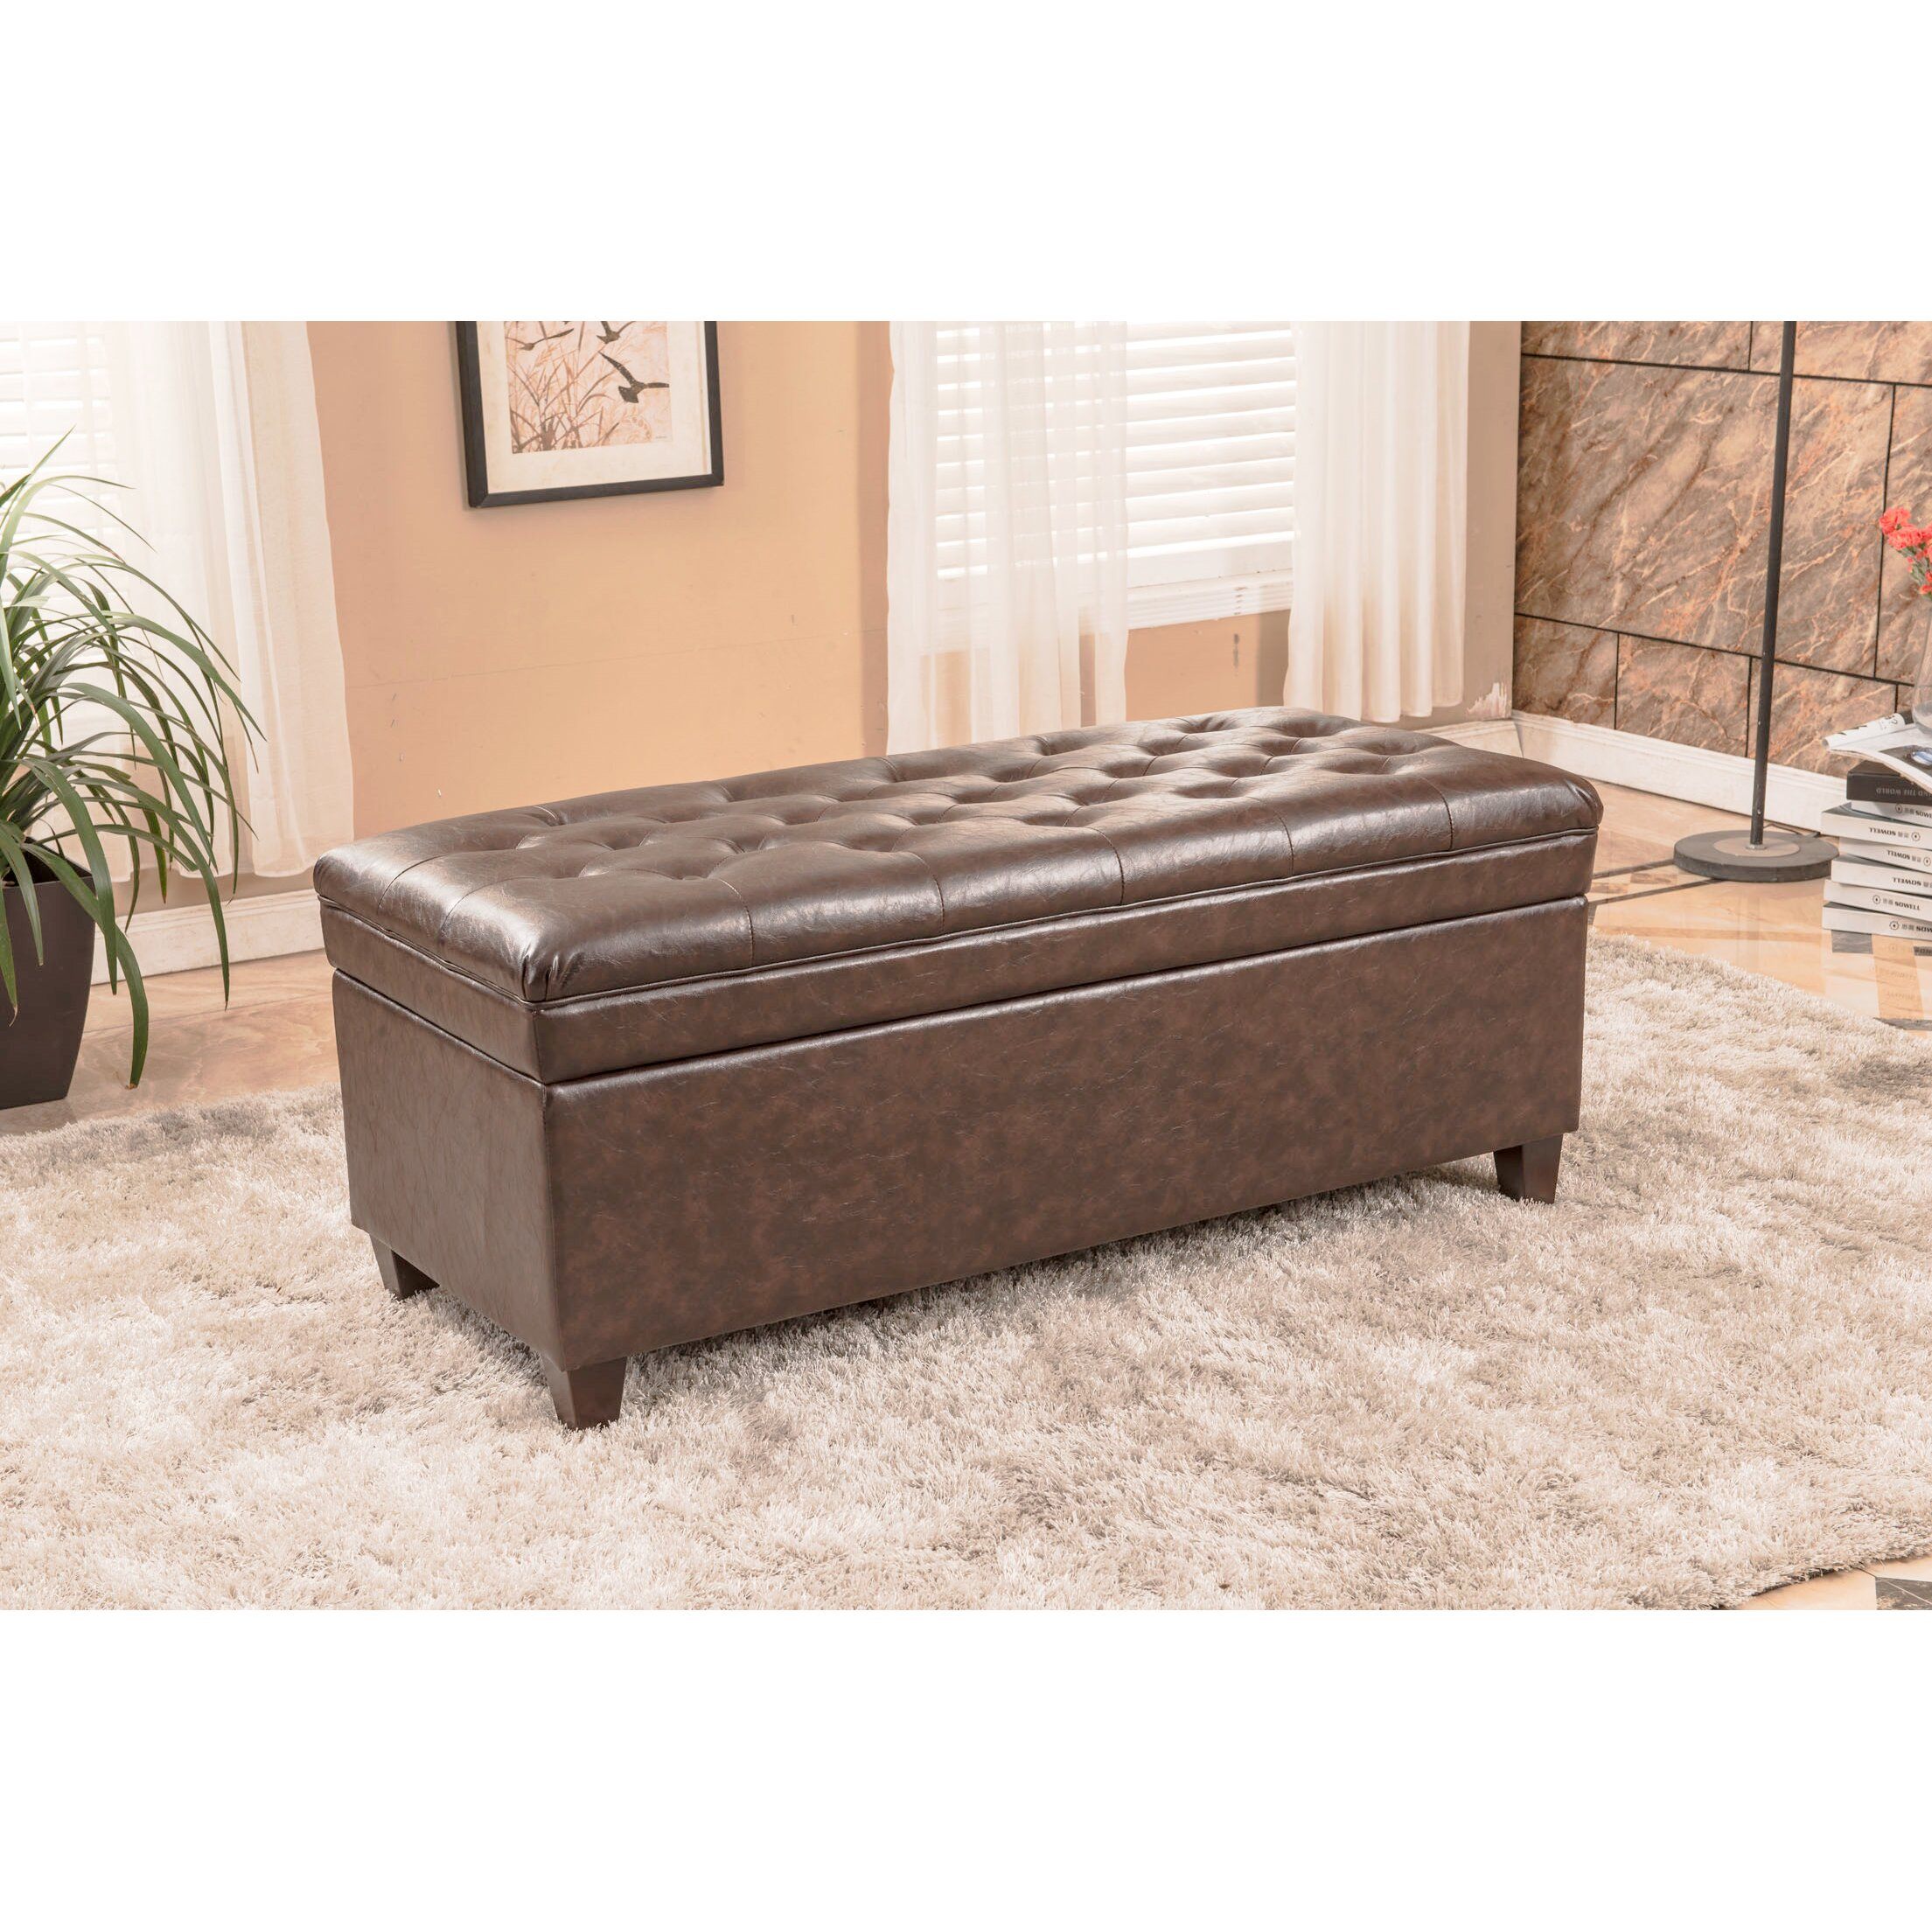 Bellasario collection upholstered storage bedroom bench reviews wayfair Bedroom storage bench